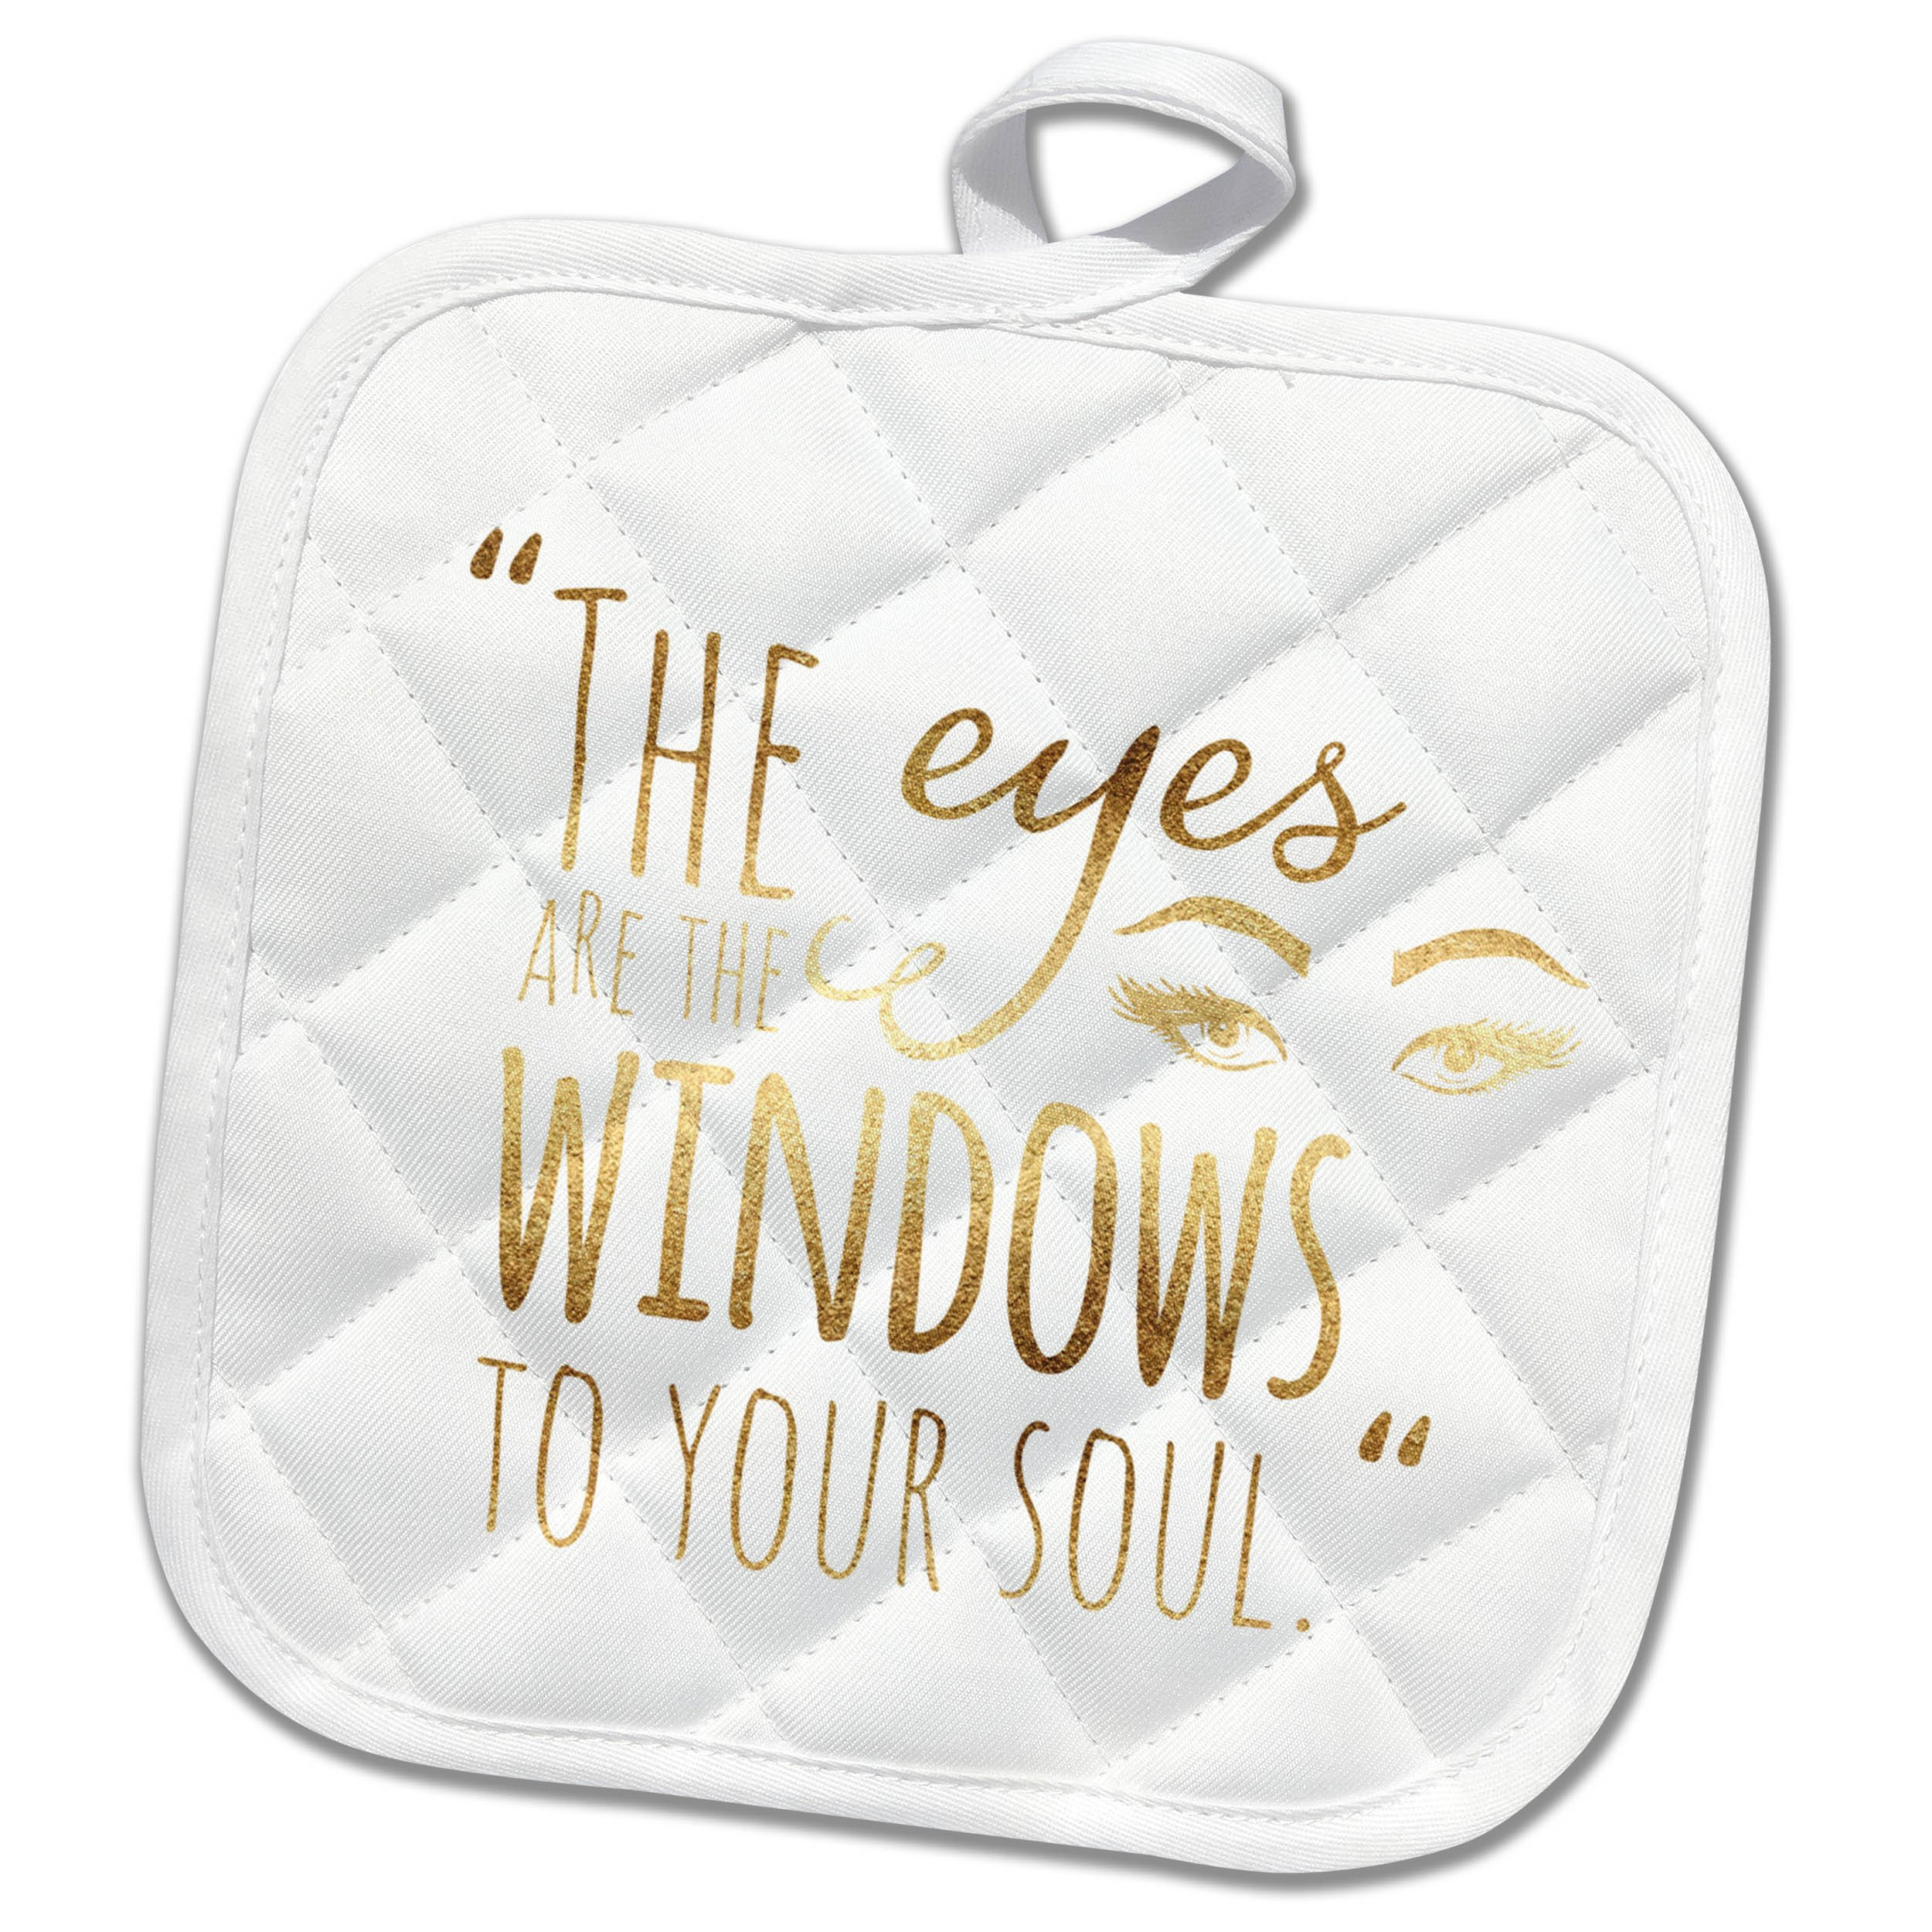 3dRose PS Inspiration - Image of Gold Eyes Are Windows to Soul Quote - 8x8 Potholder (phl_280728_1)